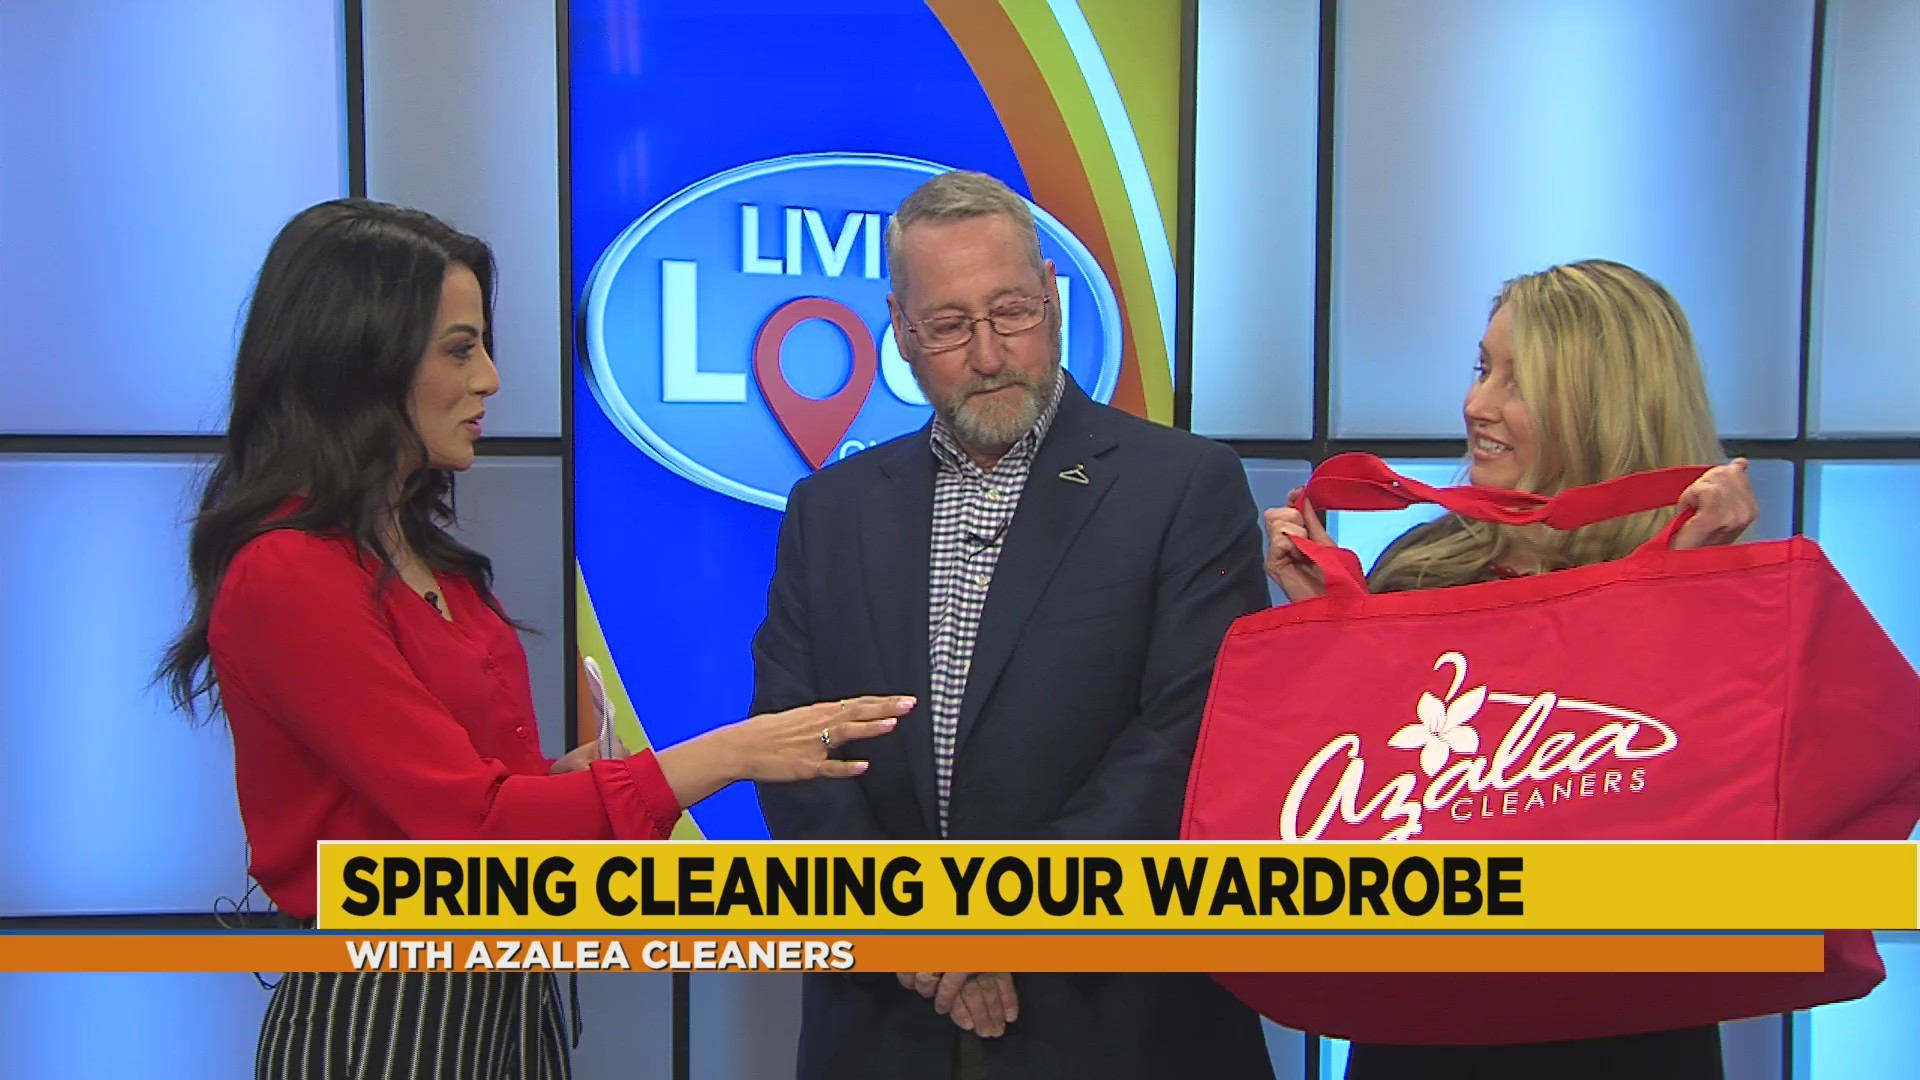 Wardrobe spring cleaning with Azalea Cleaners